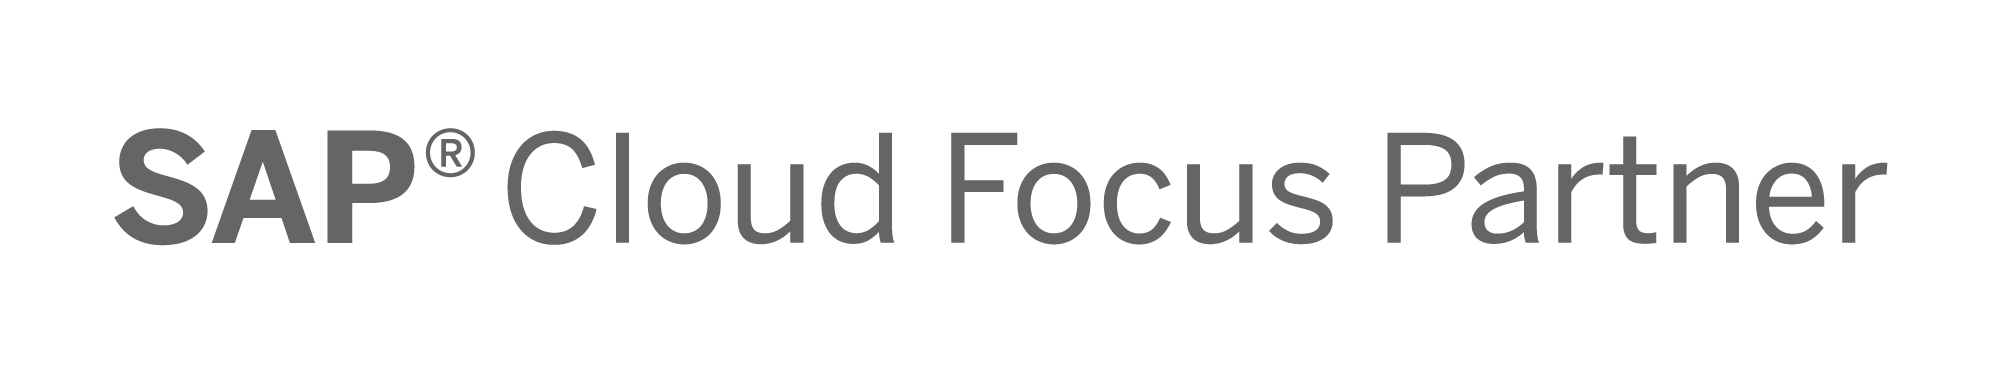 SAP Cloud Focus Partner - Innovabee ist SAP Cloud Focus Partner